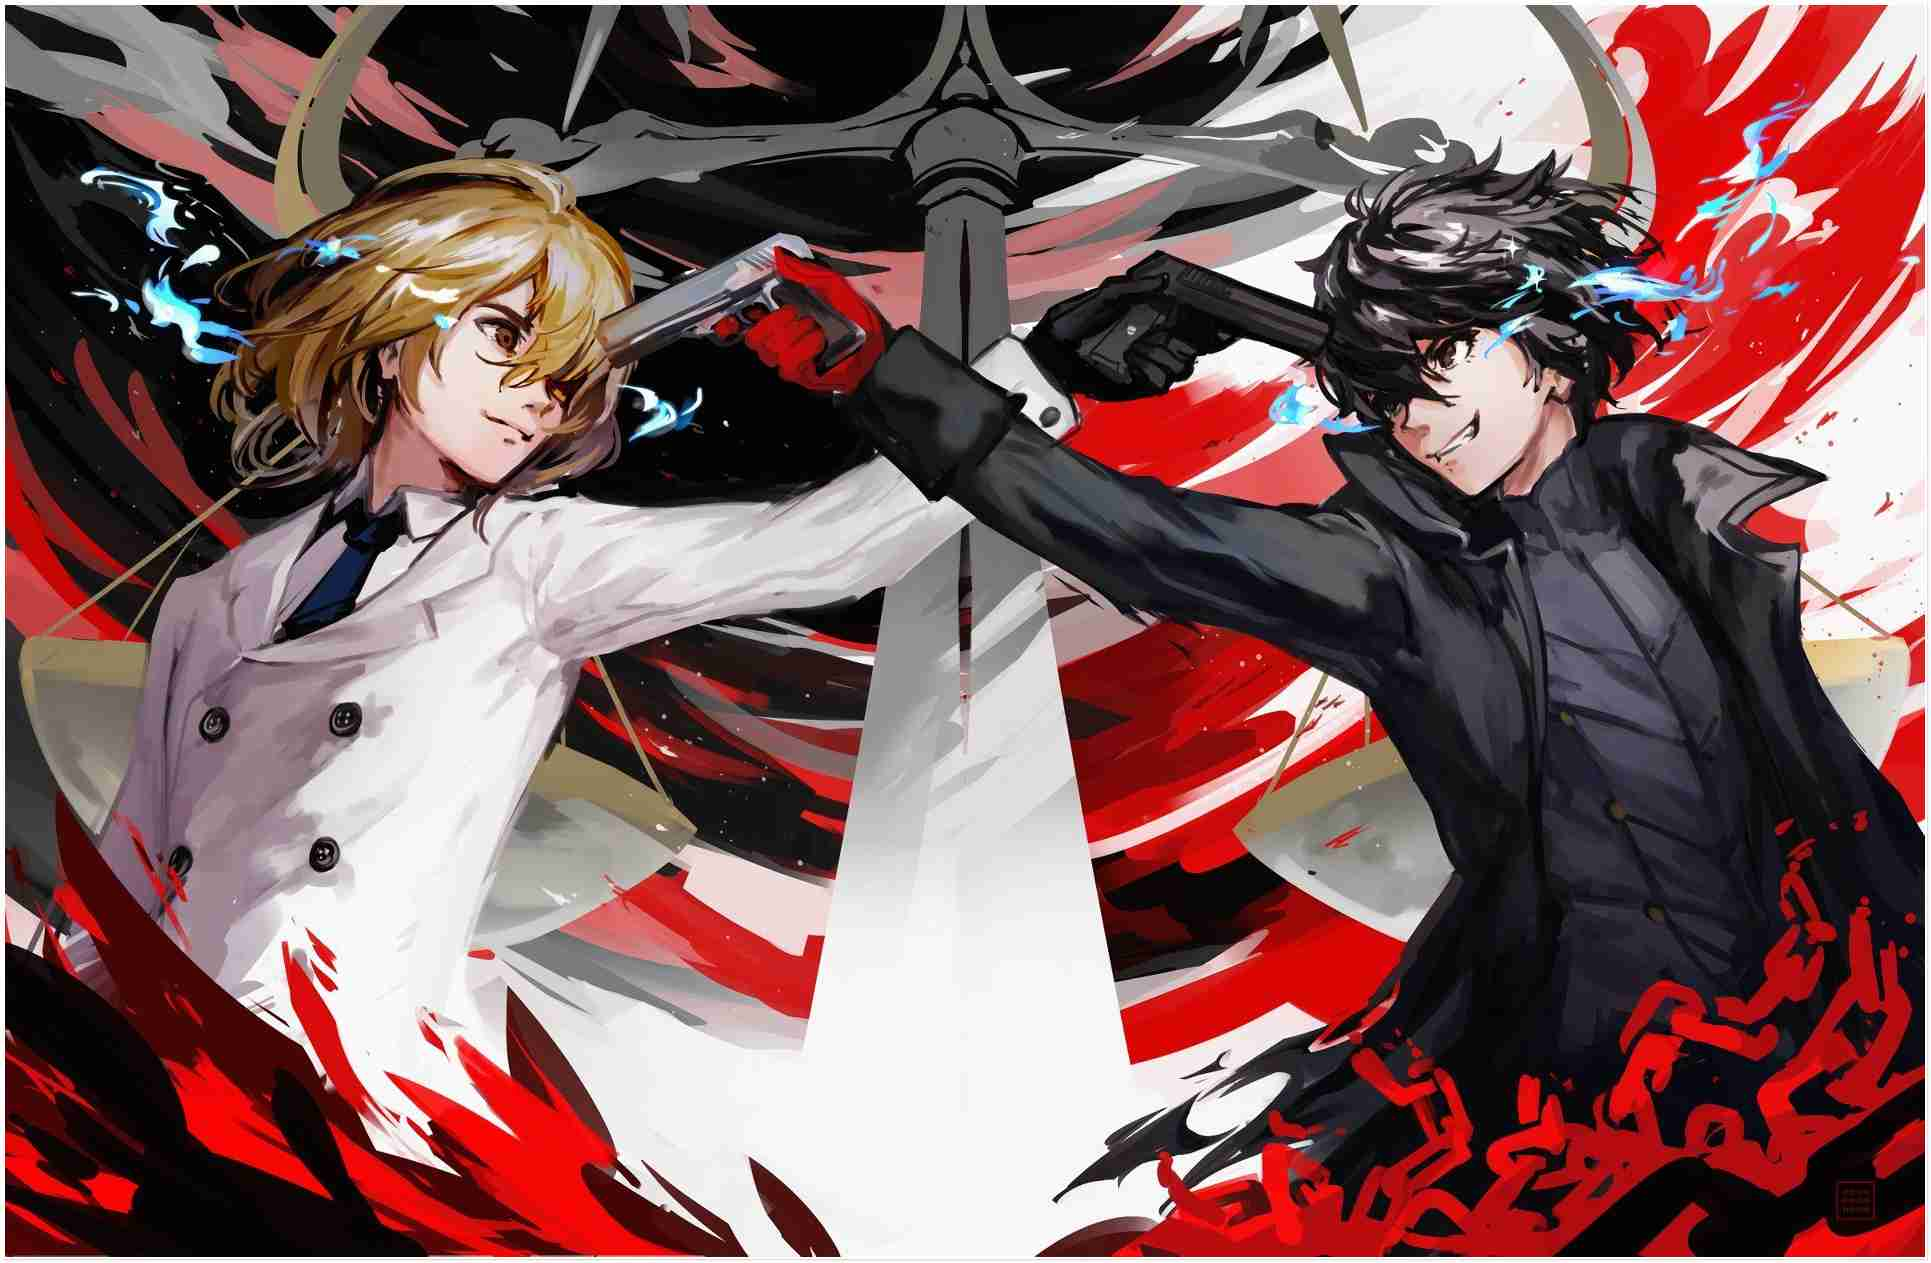 Persona 5 Wallpaper Android Posted By Zoey Tremblay